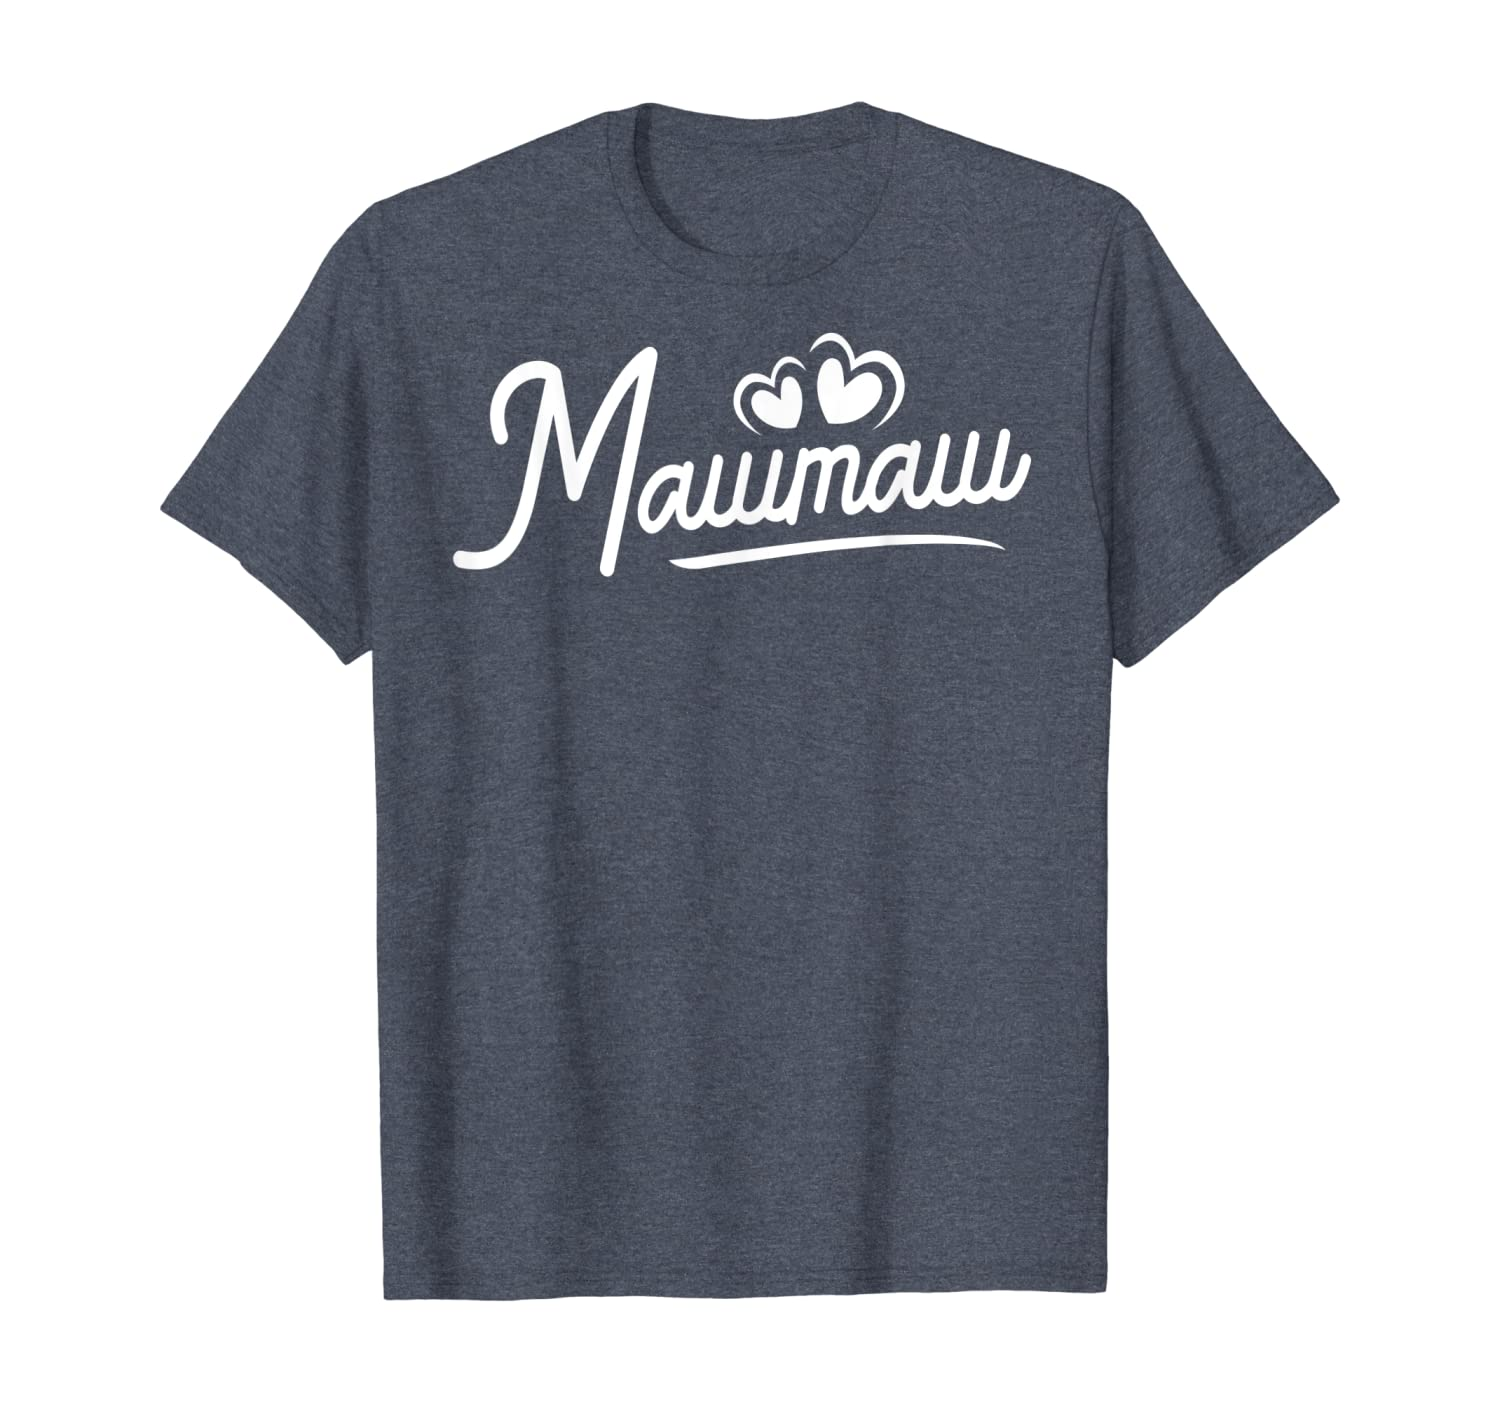 Mawmaw Shirts for Women Mawmaw Gifts from Grandma Mawmaw T-Shirt